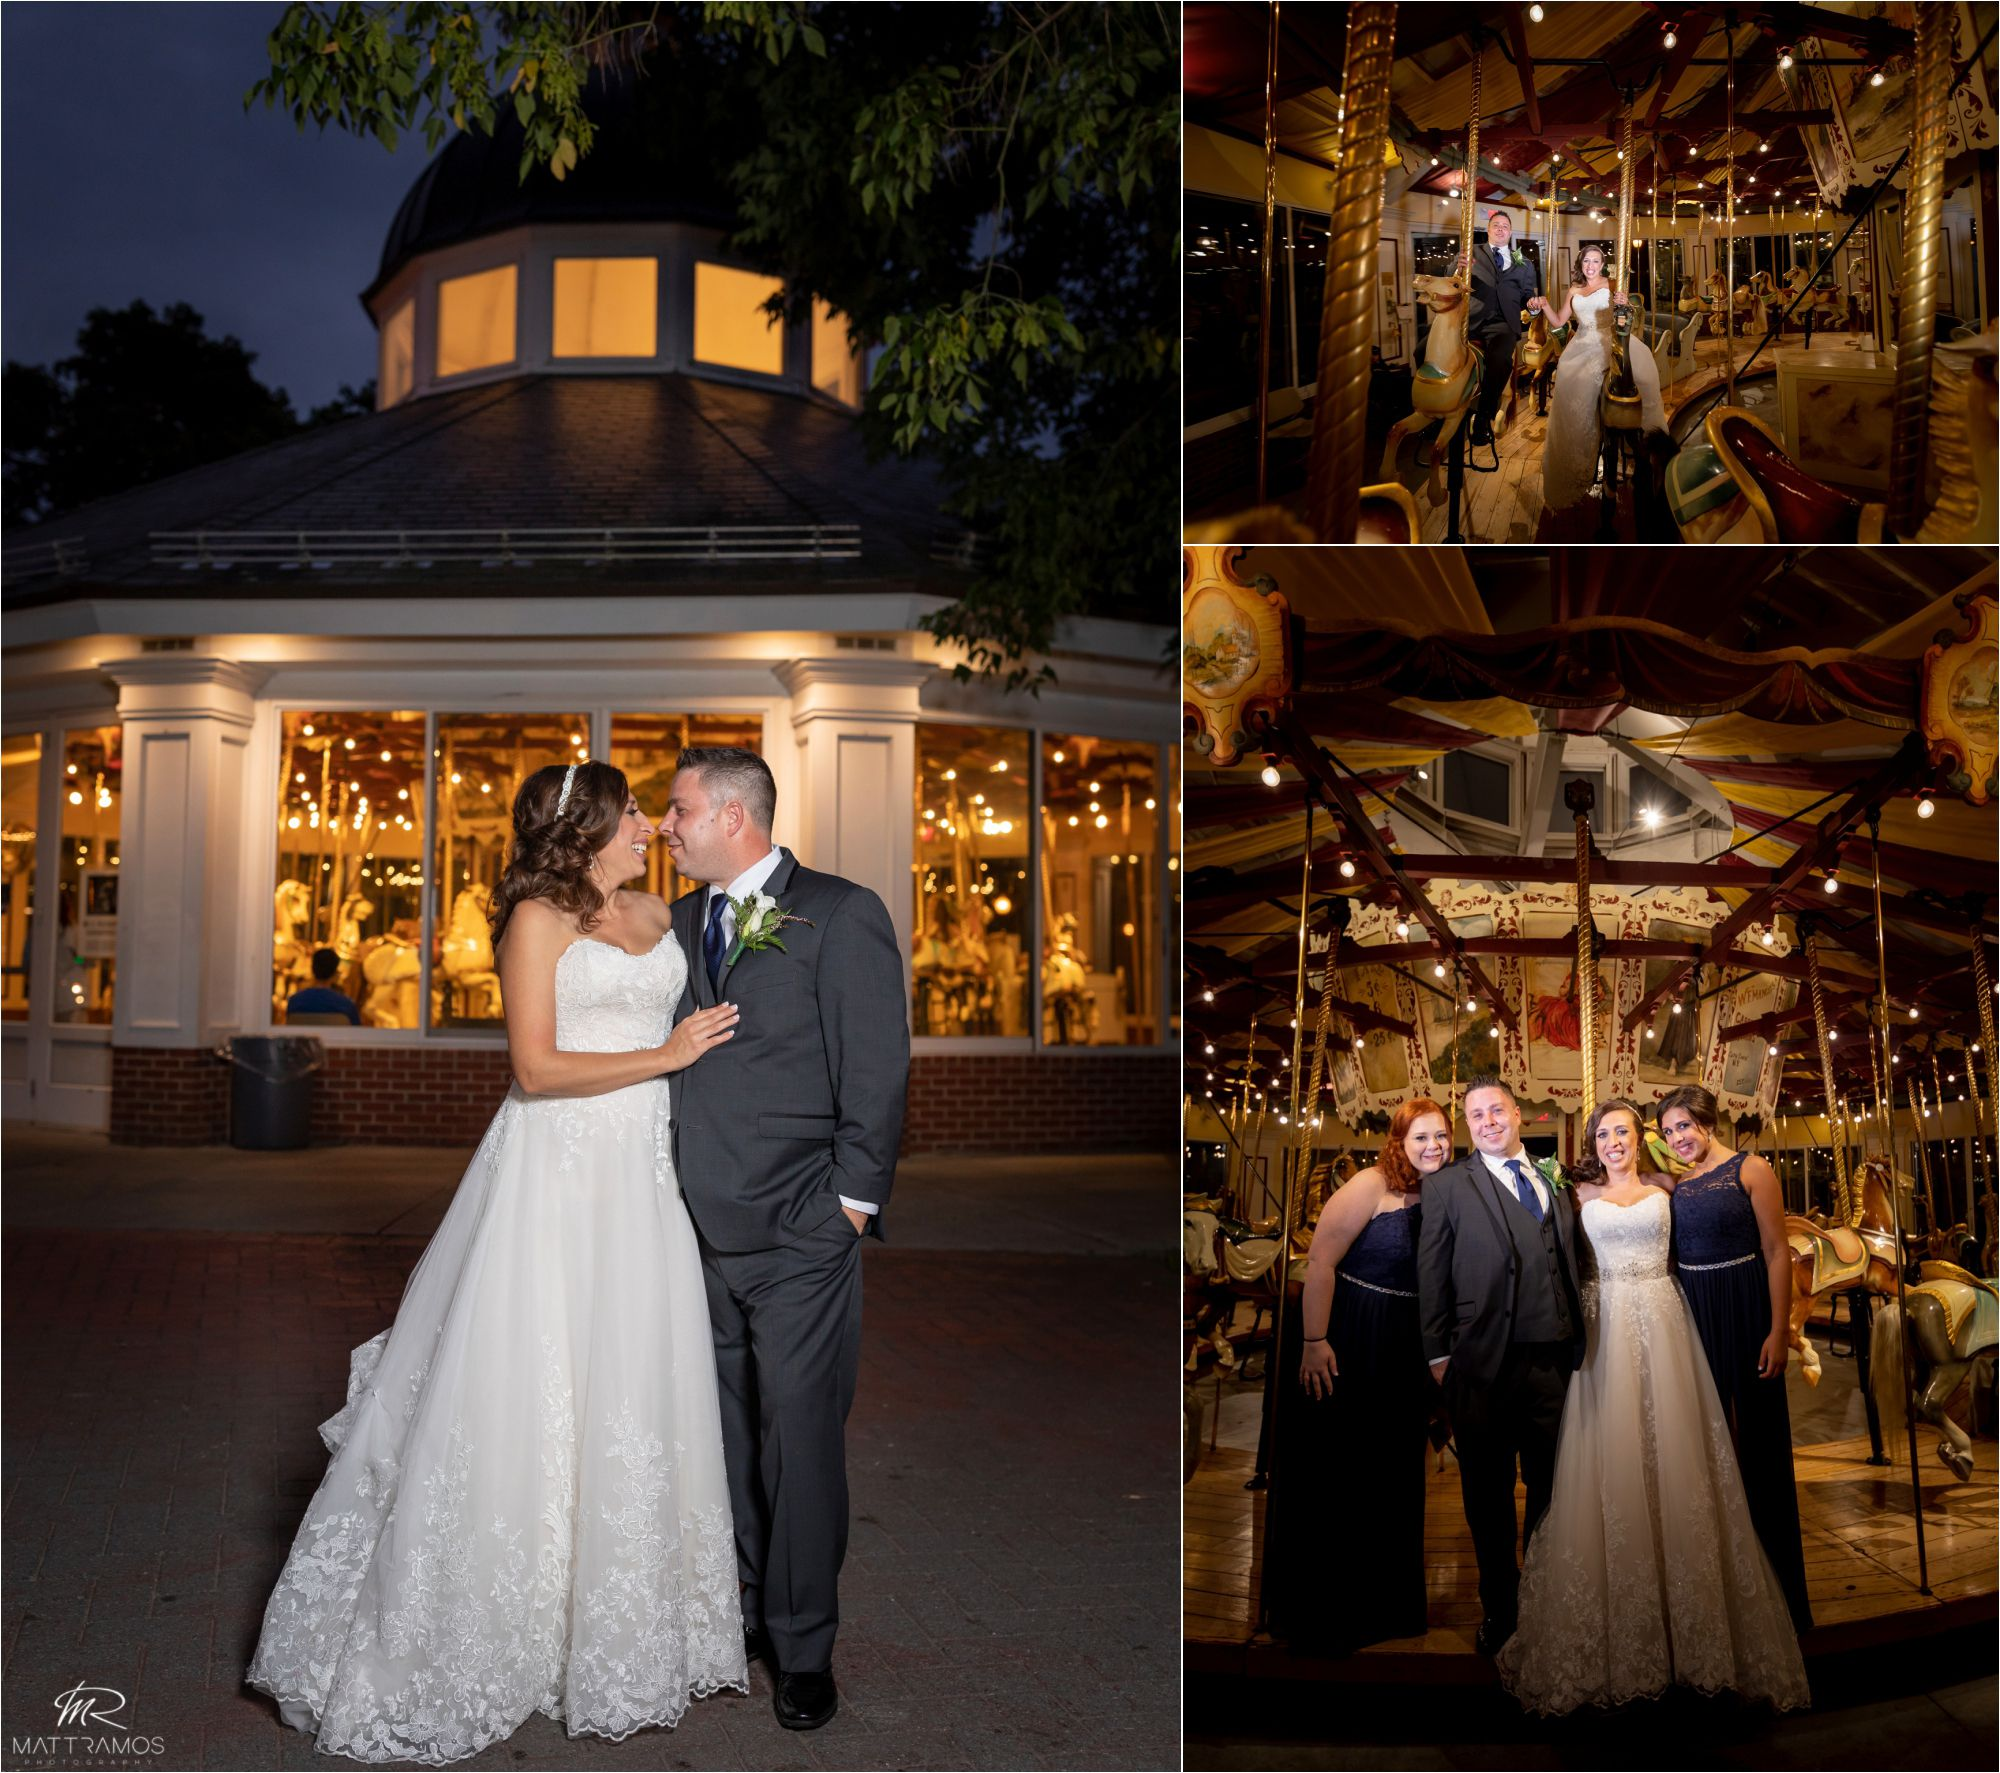 Marie Brian Canfield Casino Wedding Matt Ramos Photography Copyright C 2019 Casino Wedding Featured Wedding Wedding Images